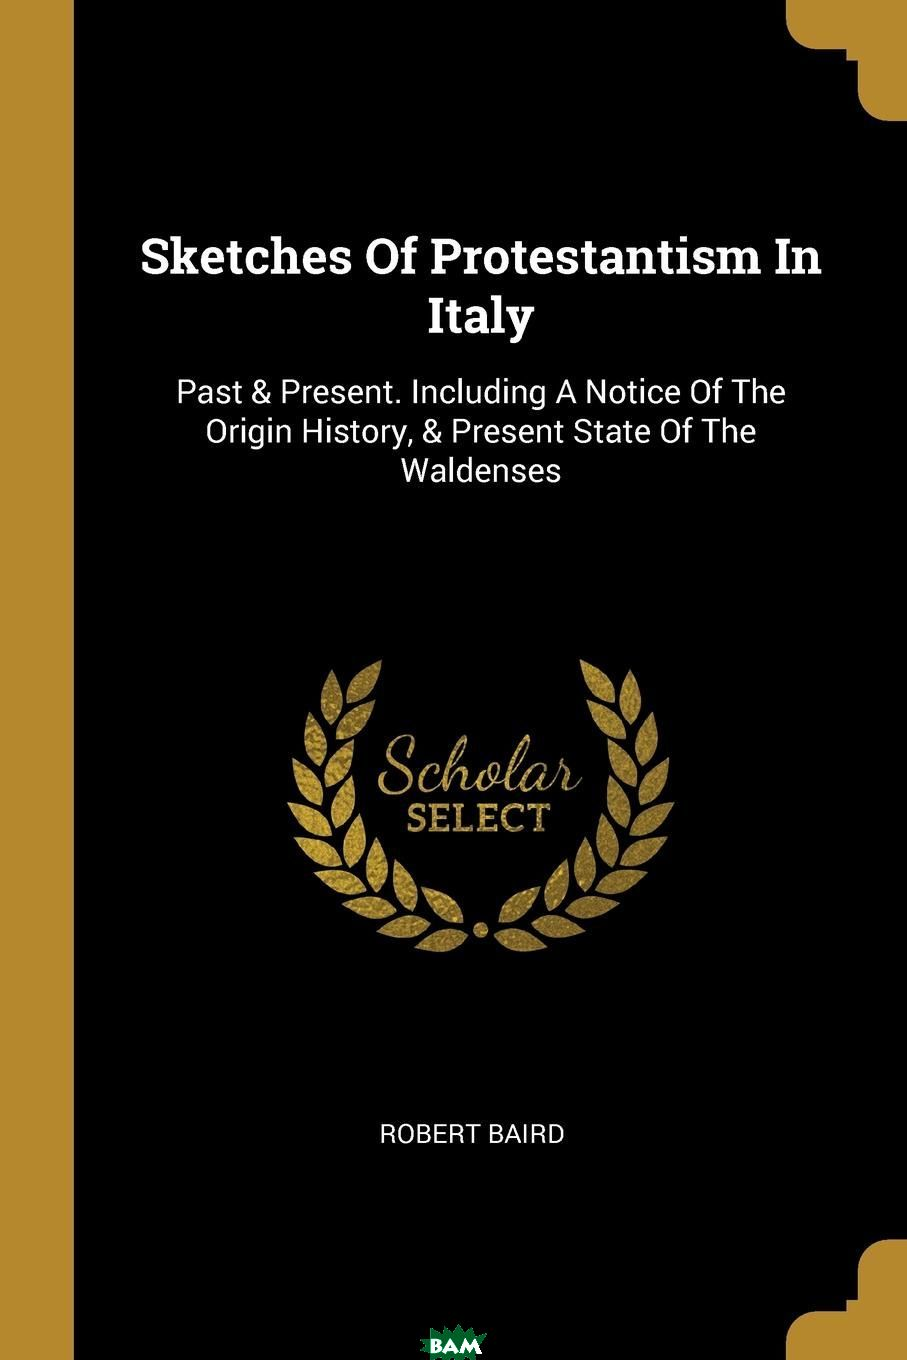 Купить Sketches Of Protestantism In Italy. Past . Present. Including A Notice Of The Origin History, . Present State Of The Waldenses, Robert Baird, 9781011069910